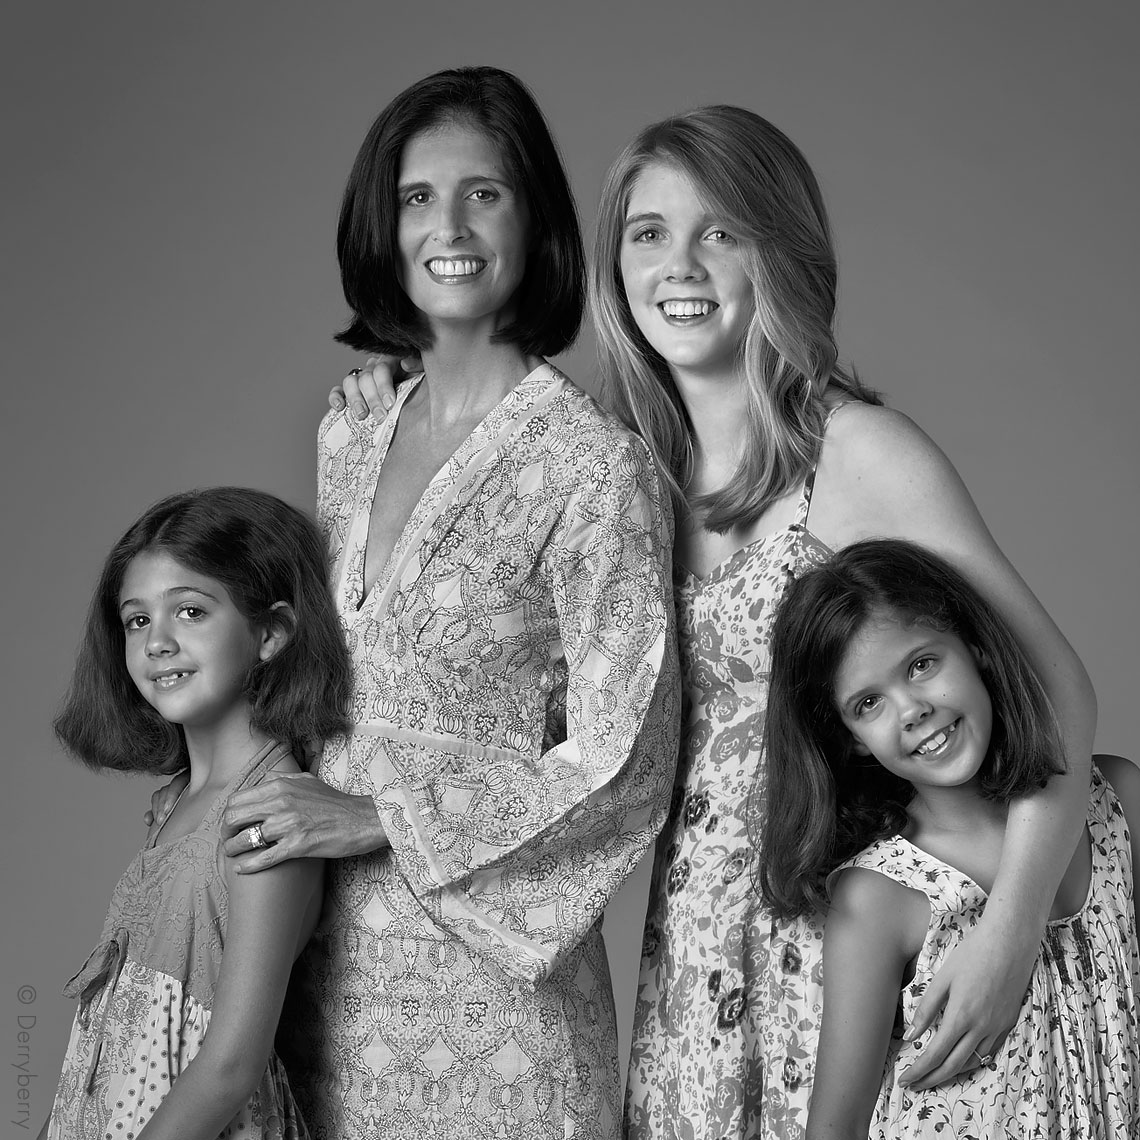 Black and white group portrait of the Horchow, Fearon, Pilsberry family girls in the studio  in Dallas, Texas by photographer John Derryberry Photography